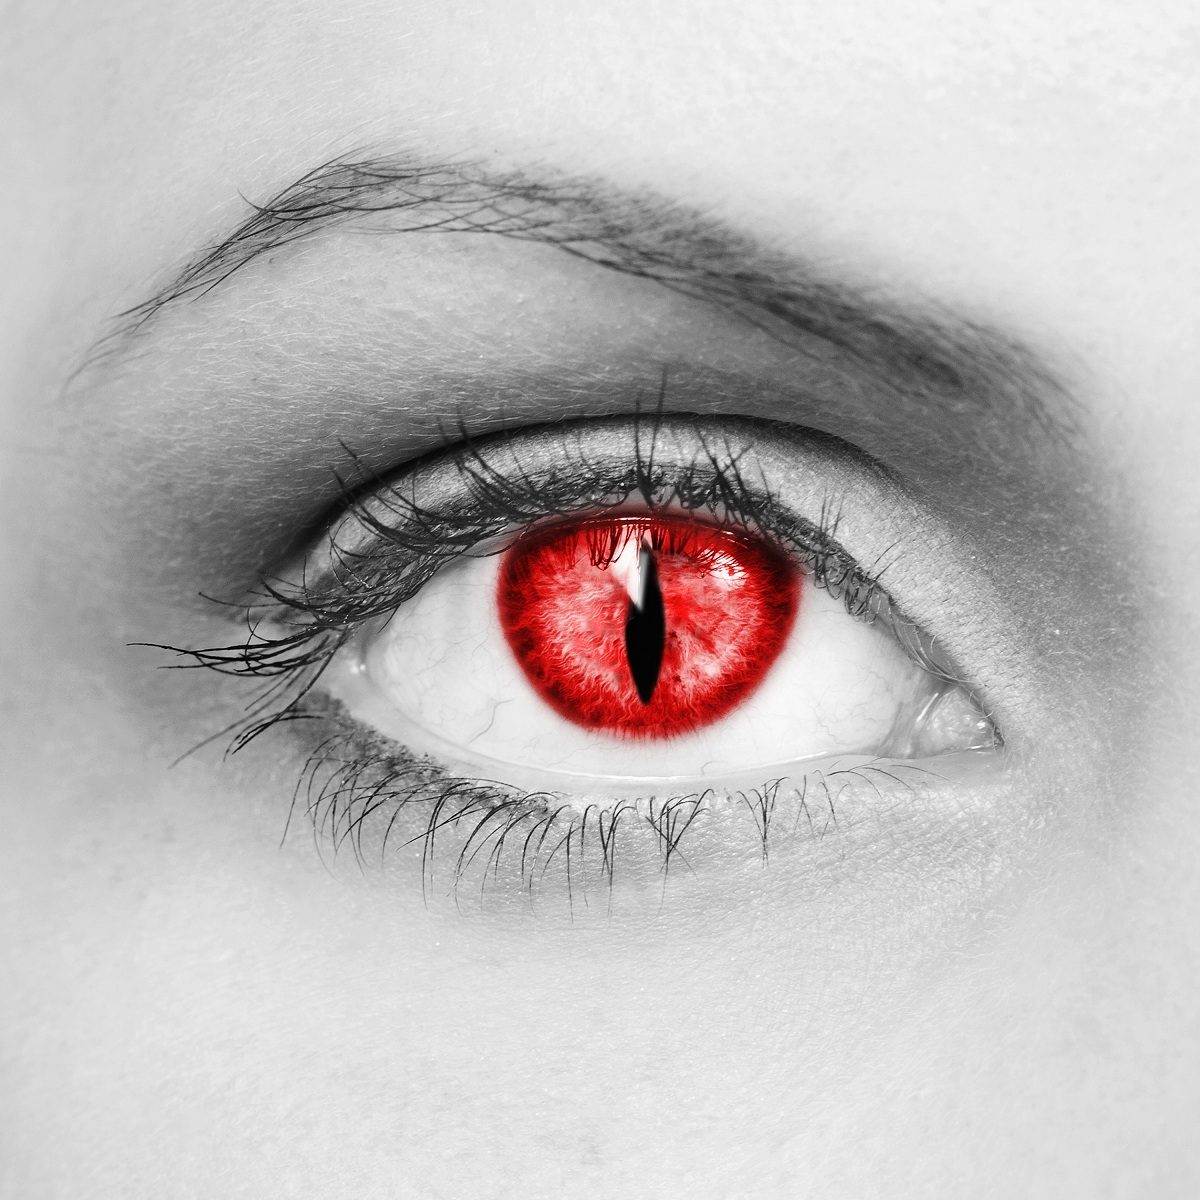 The eye of the vampire